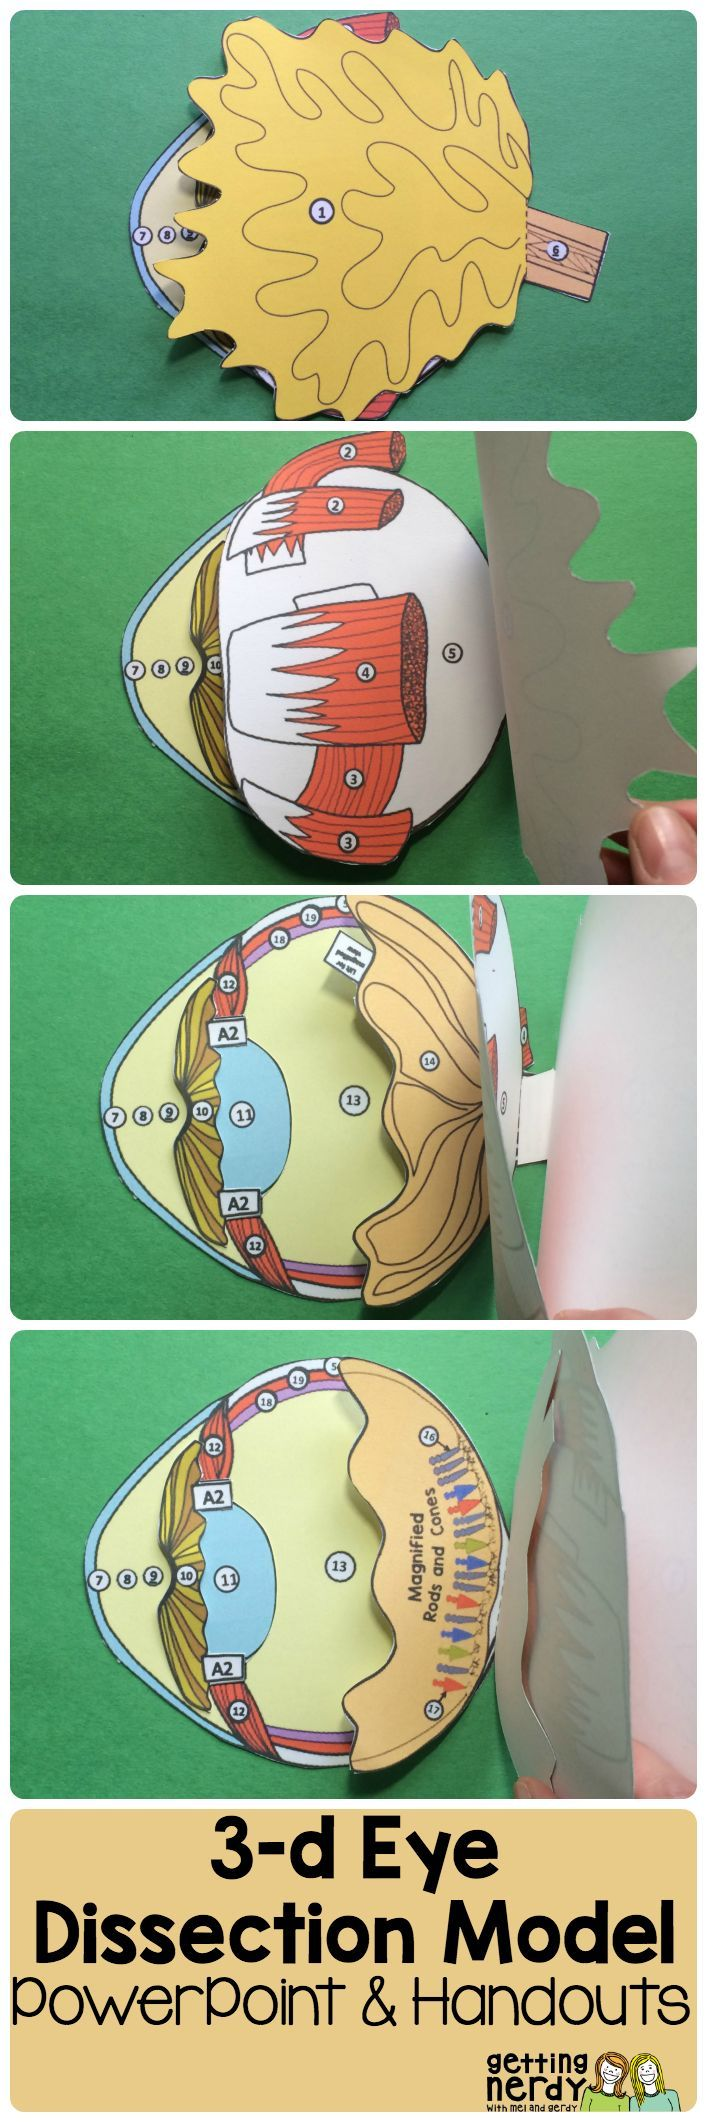 Eye Paper Dissection Scienstructable 3d Dissection Model